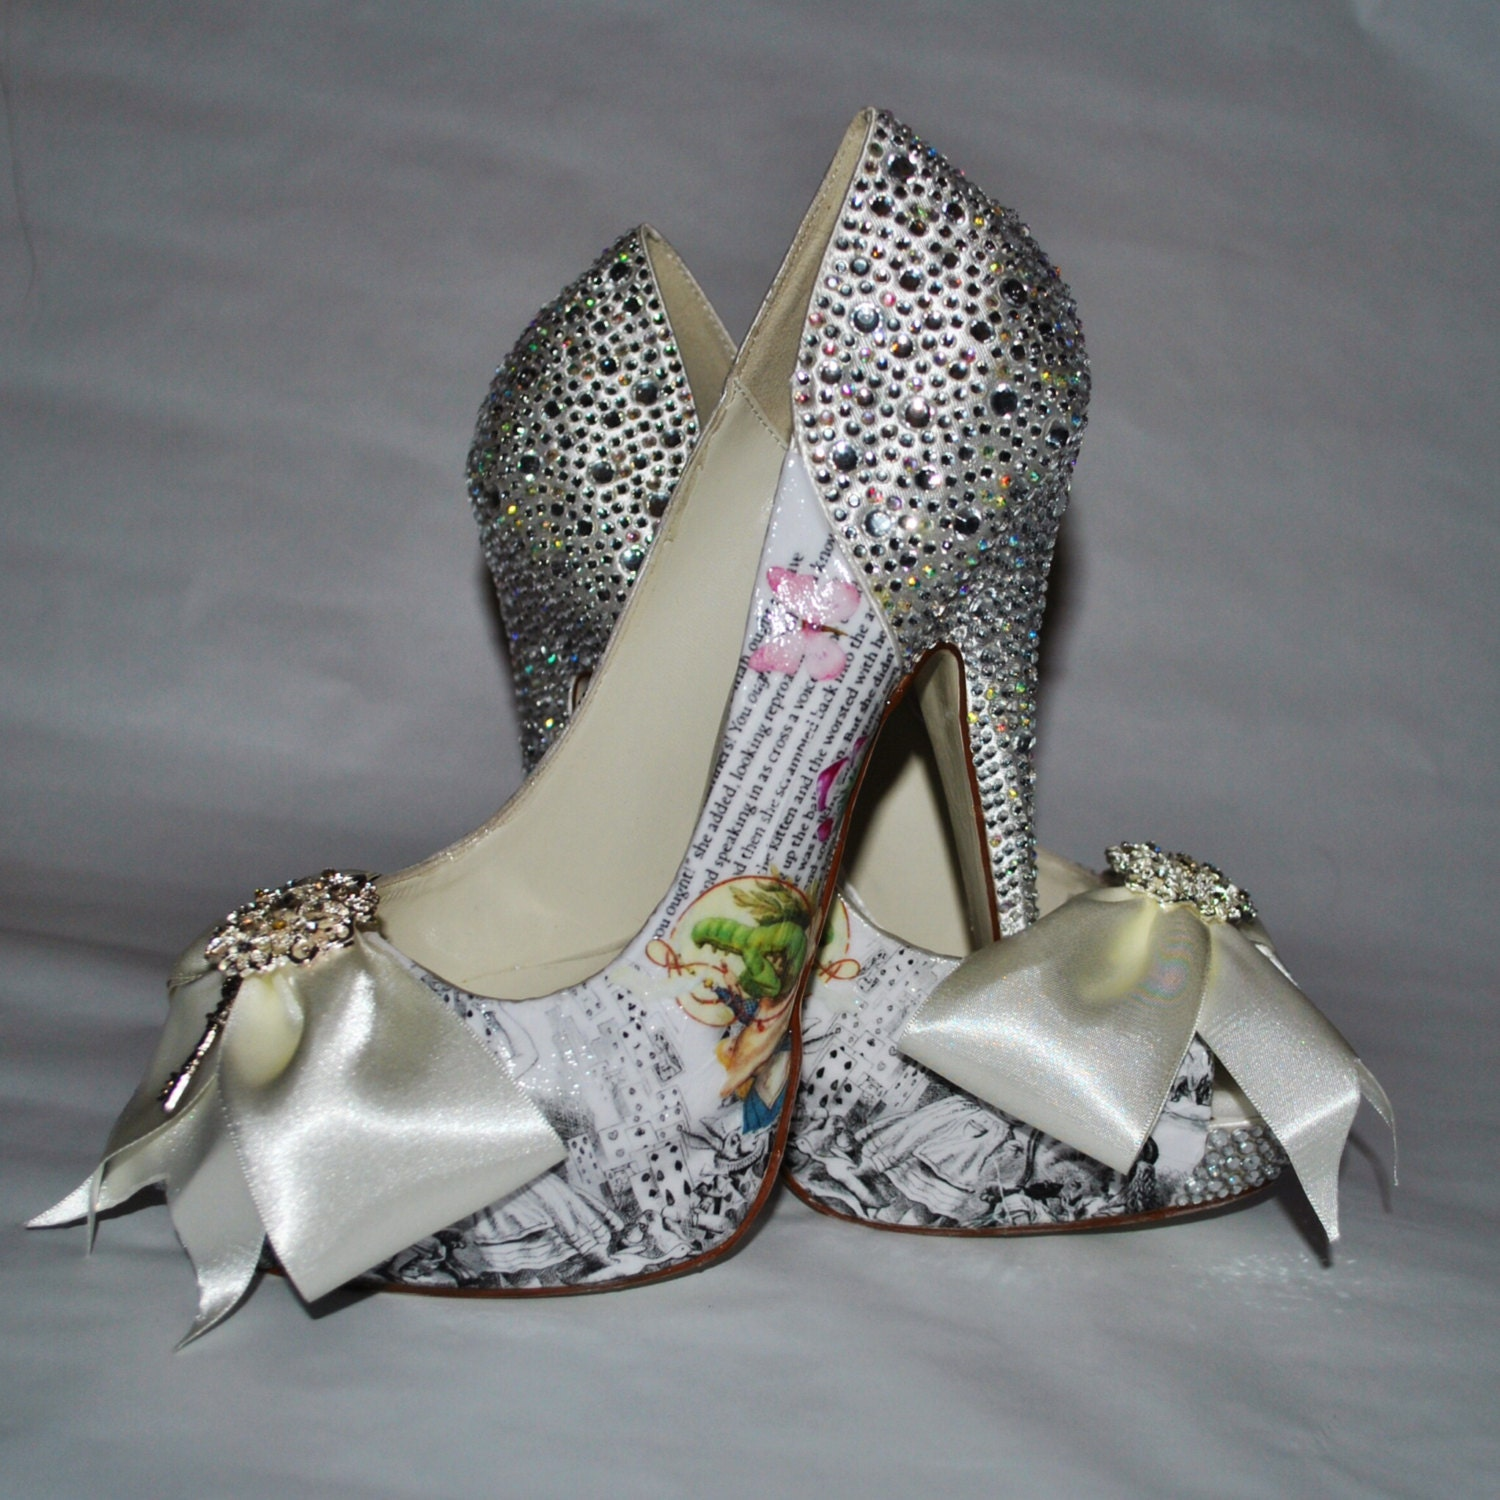 Custom Made Bridal Shoes Uk: Alice In Wonderland Wedding Shoes Handmade Inspired By The